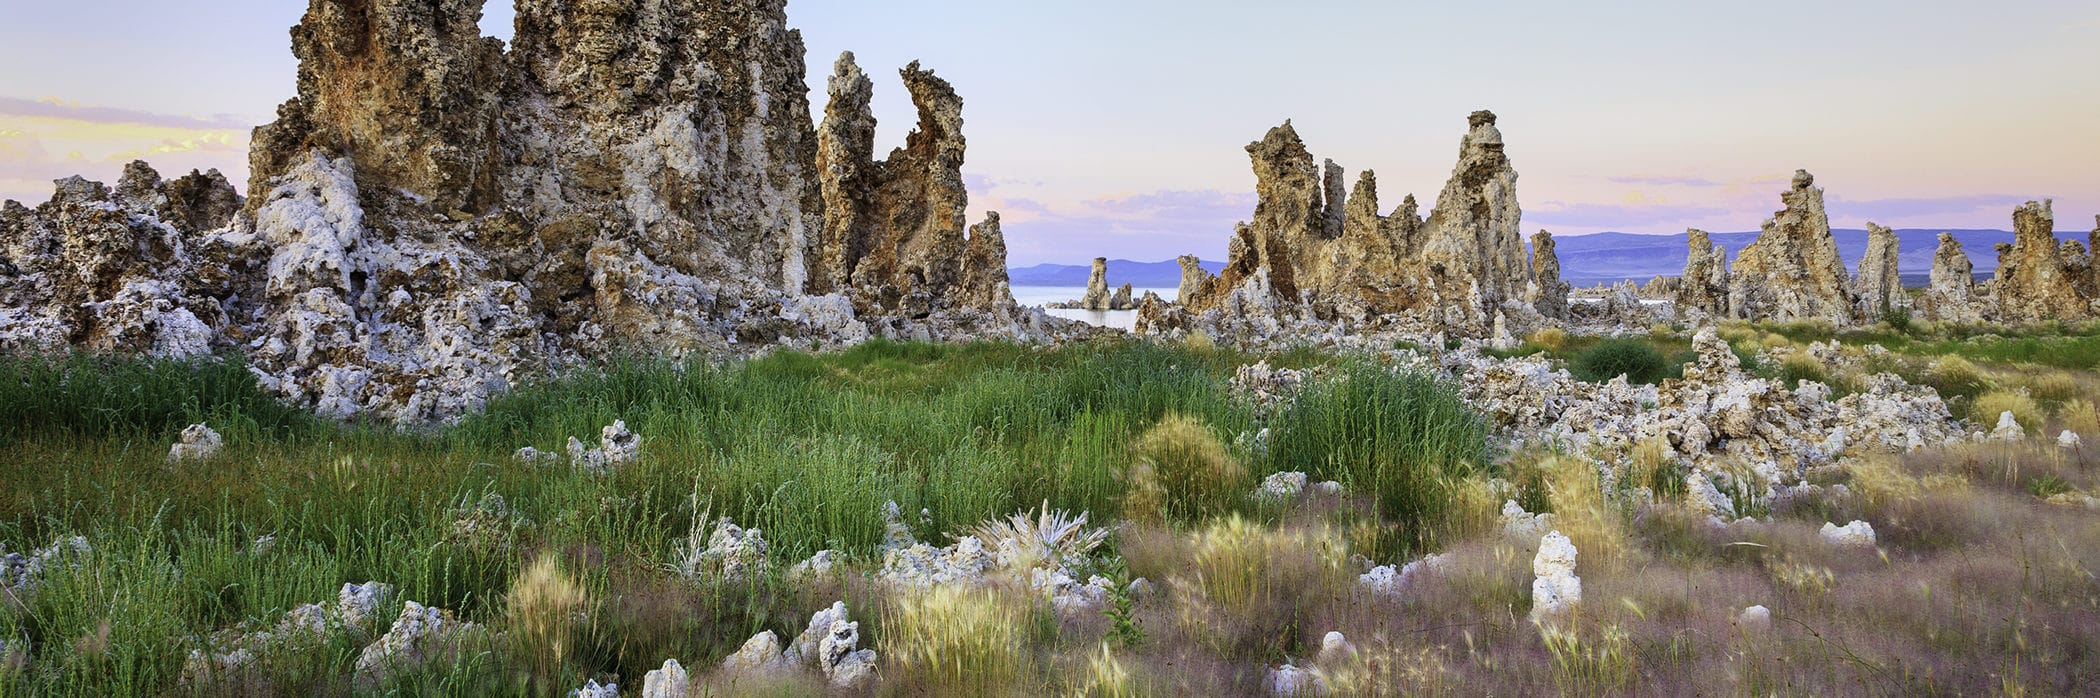 Tall craggy tufa spires tower over bright green, yellow, and pink grasses with a clear sky and soft sunset hues.